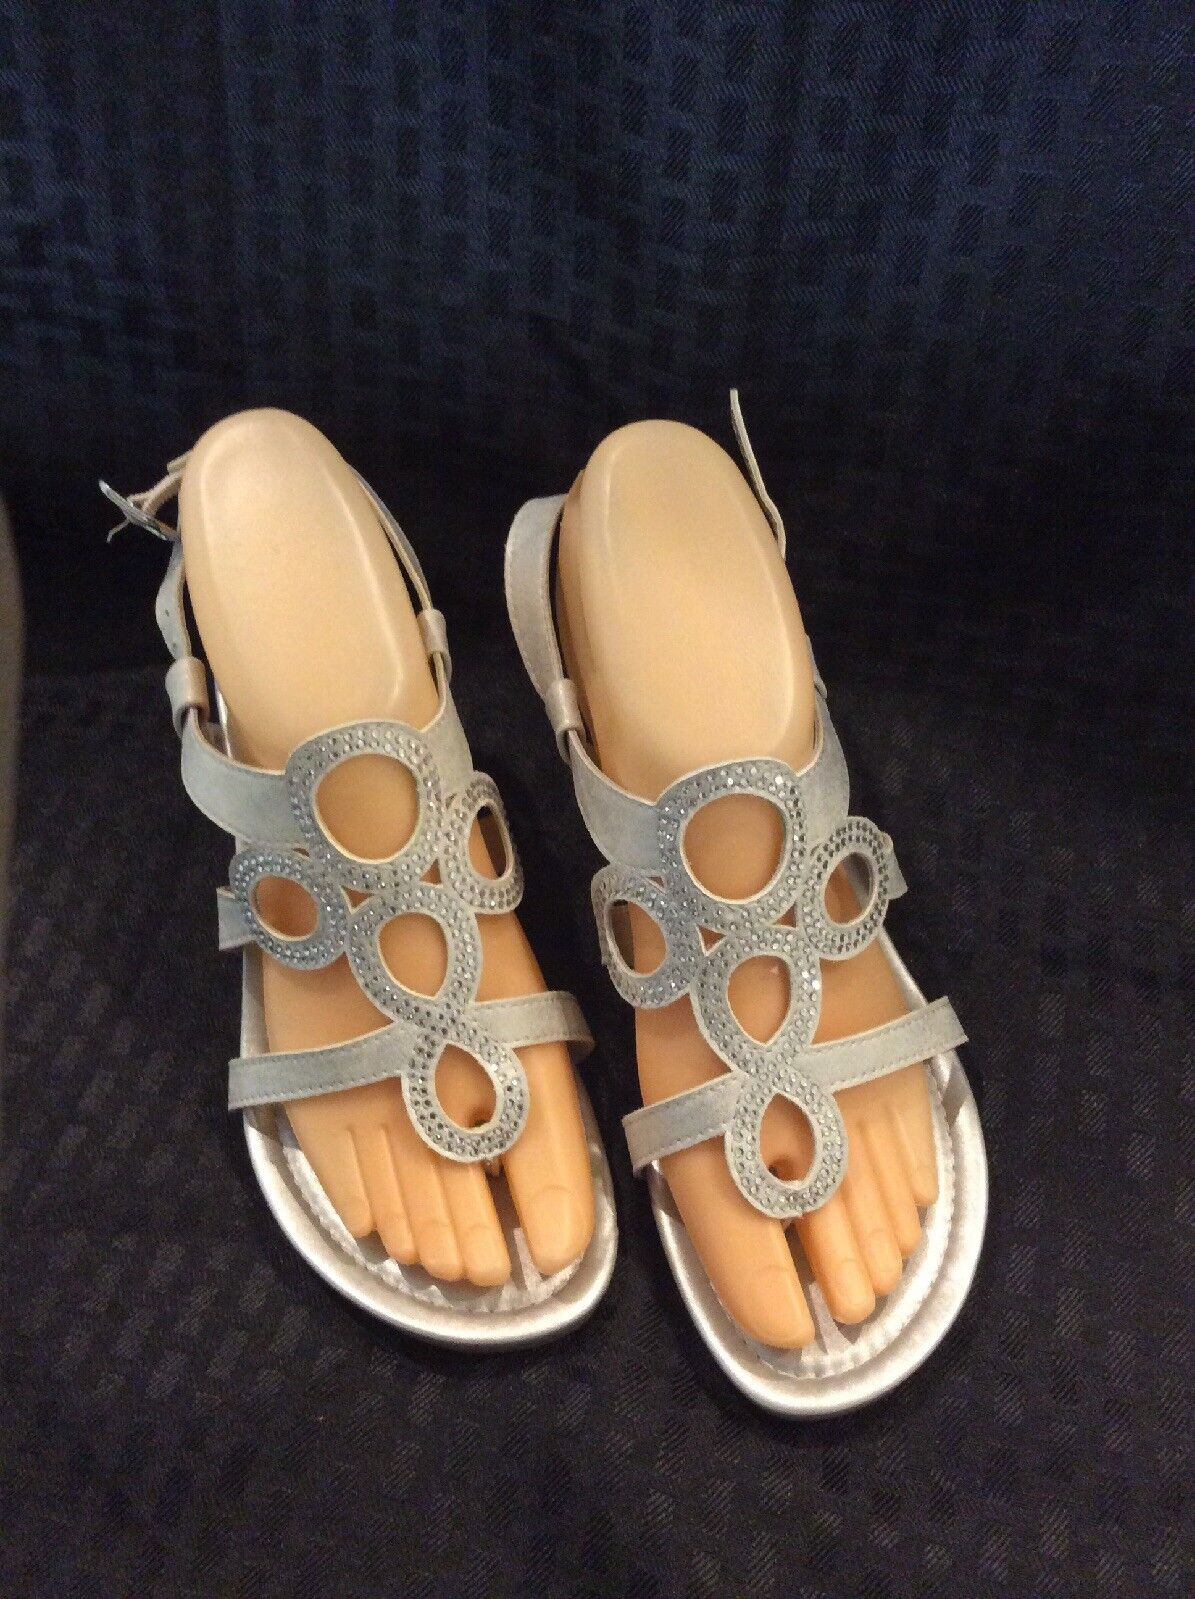 EUC Sandals PESARO Womens Slingback Heeled Sandals EUC  Size 6M  Color Silver **Must See** af66b4